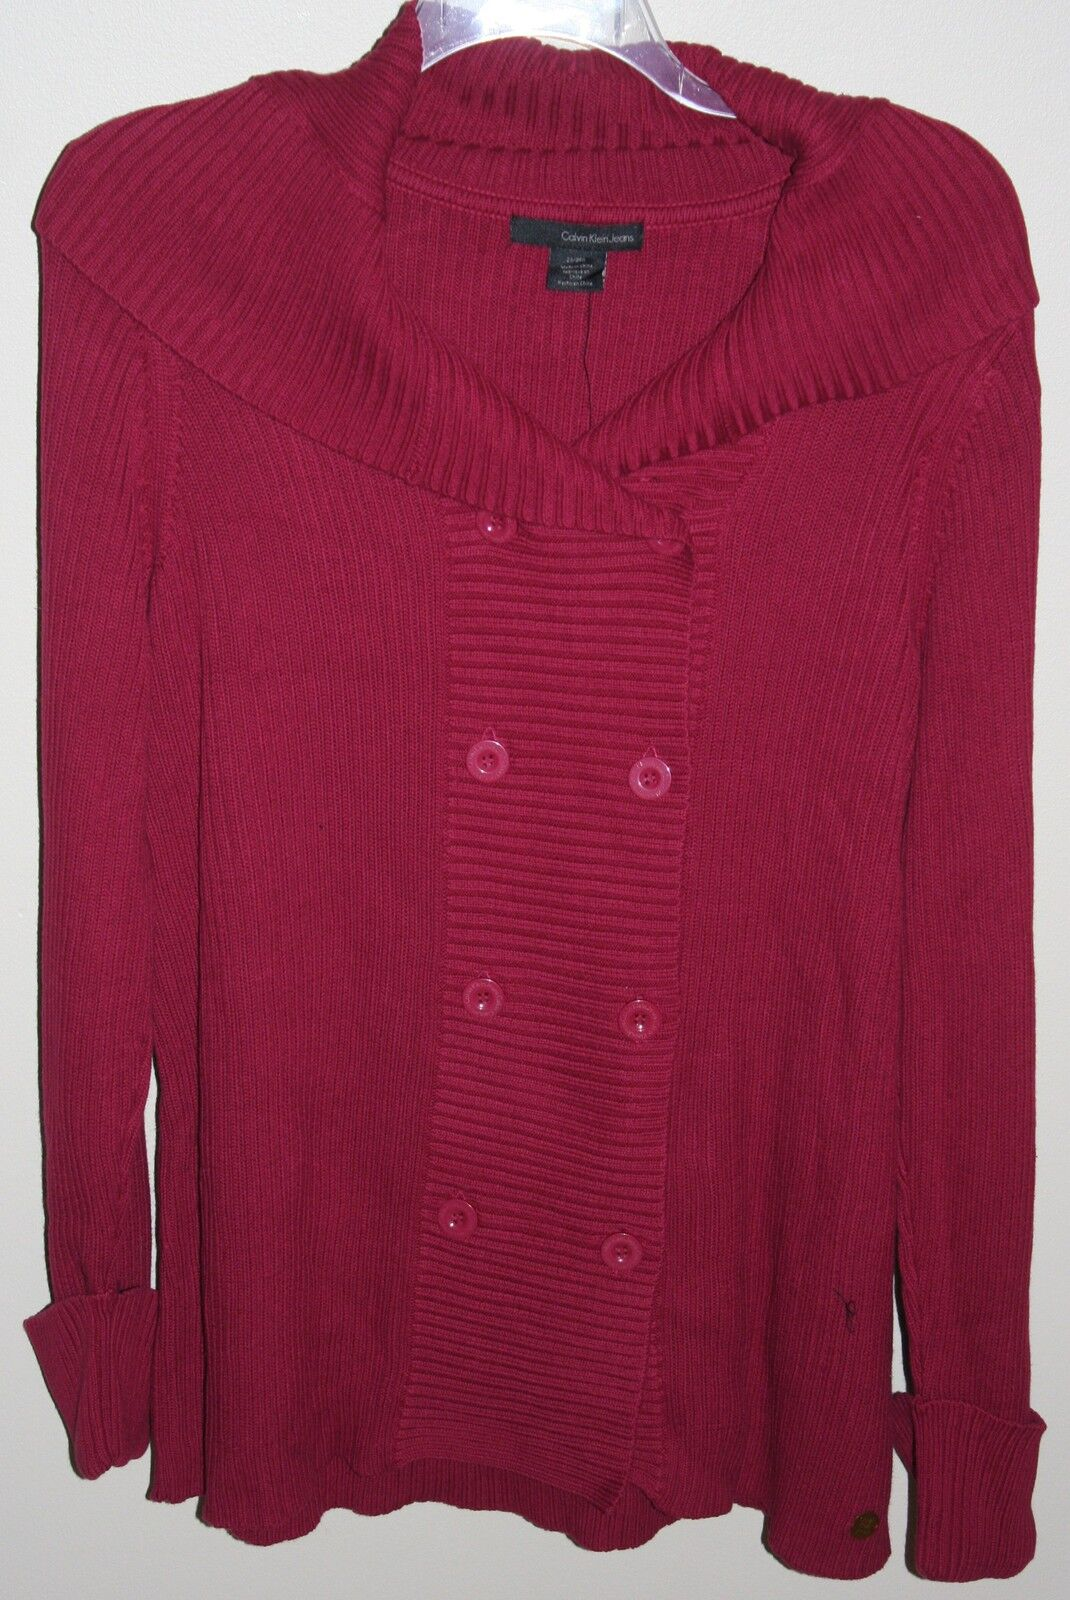 Calvin Klein Plus Berry/red Cardigan Sweater Size 2x | eBay